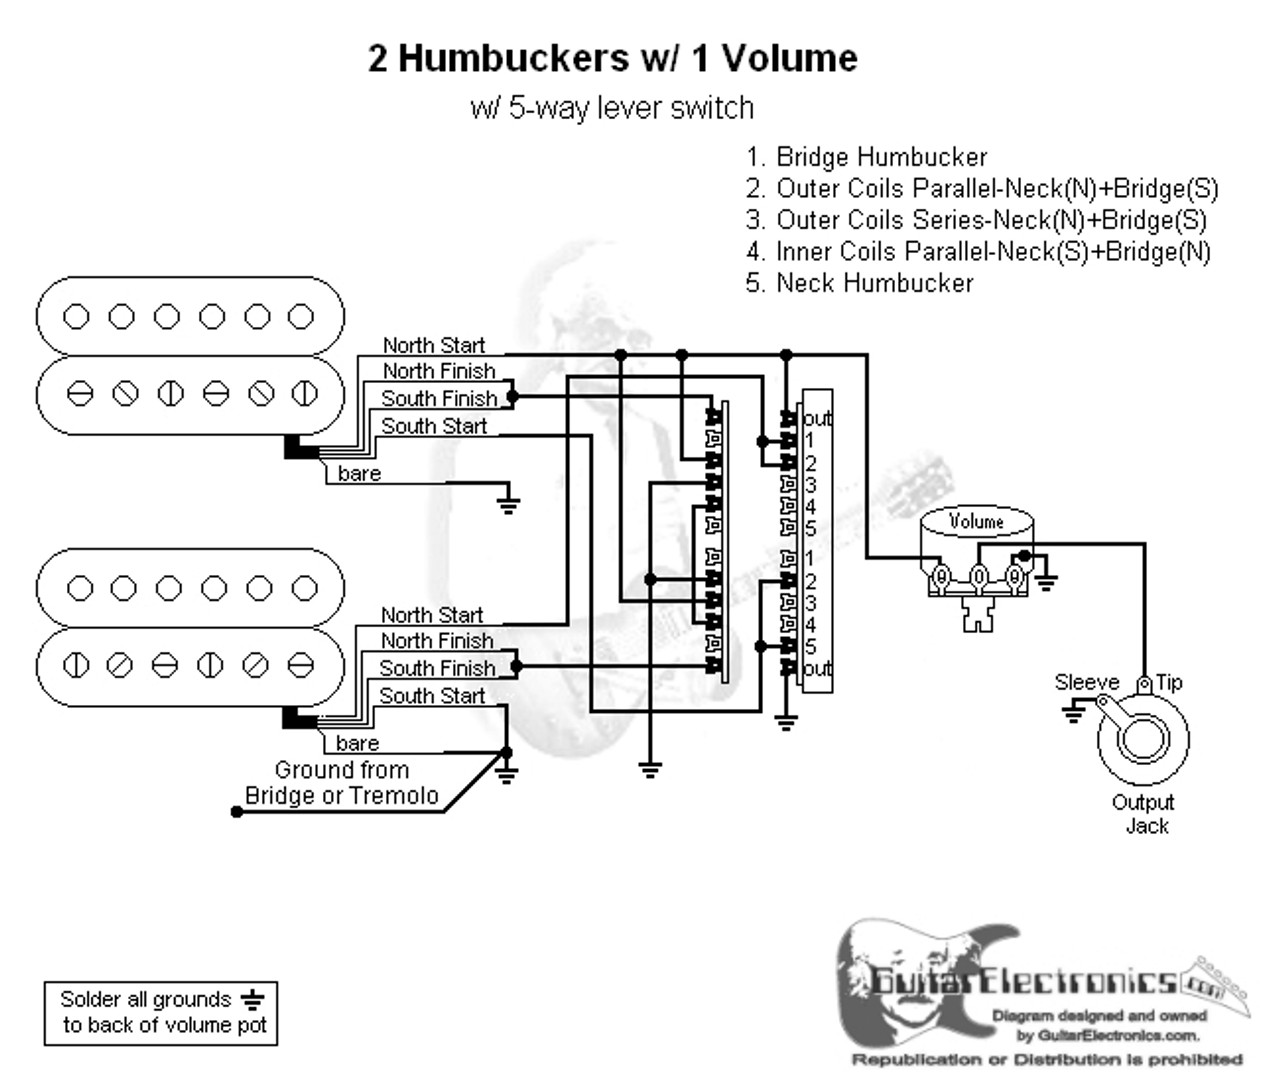 2 Humbuckers 5 Way Lever Switch 1 Volume 06